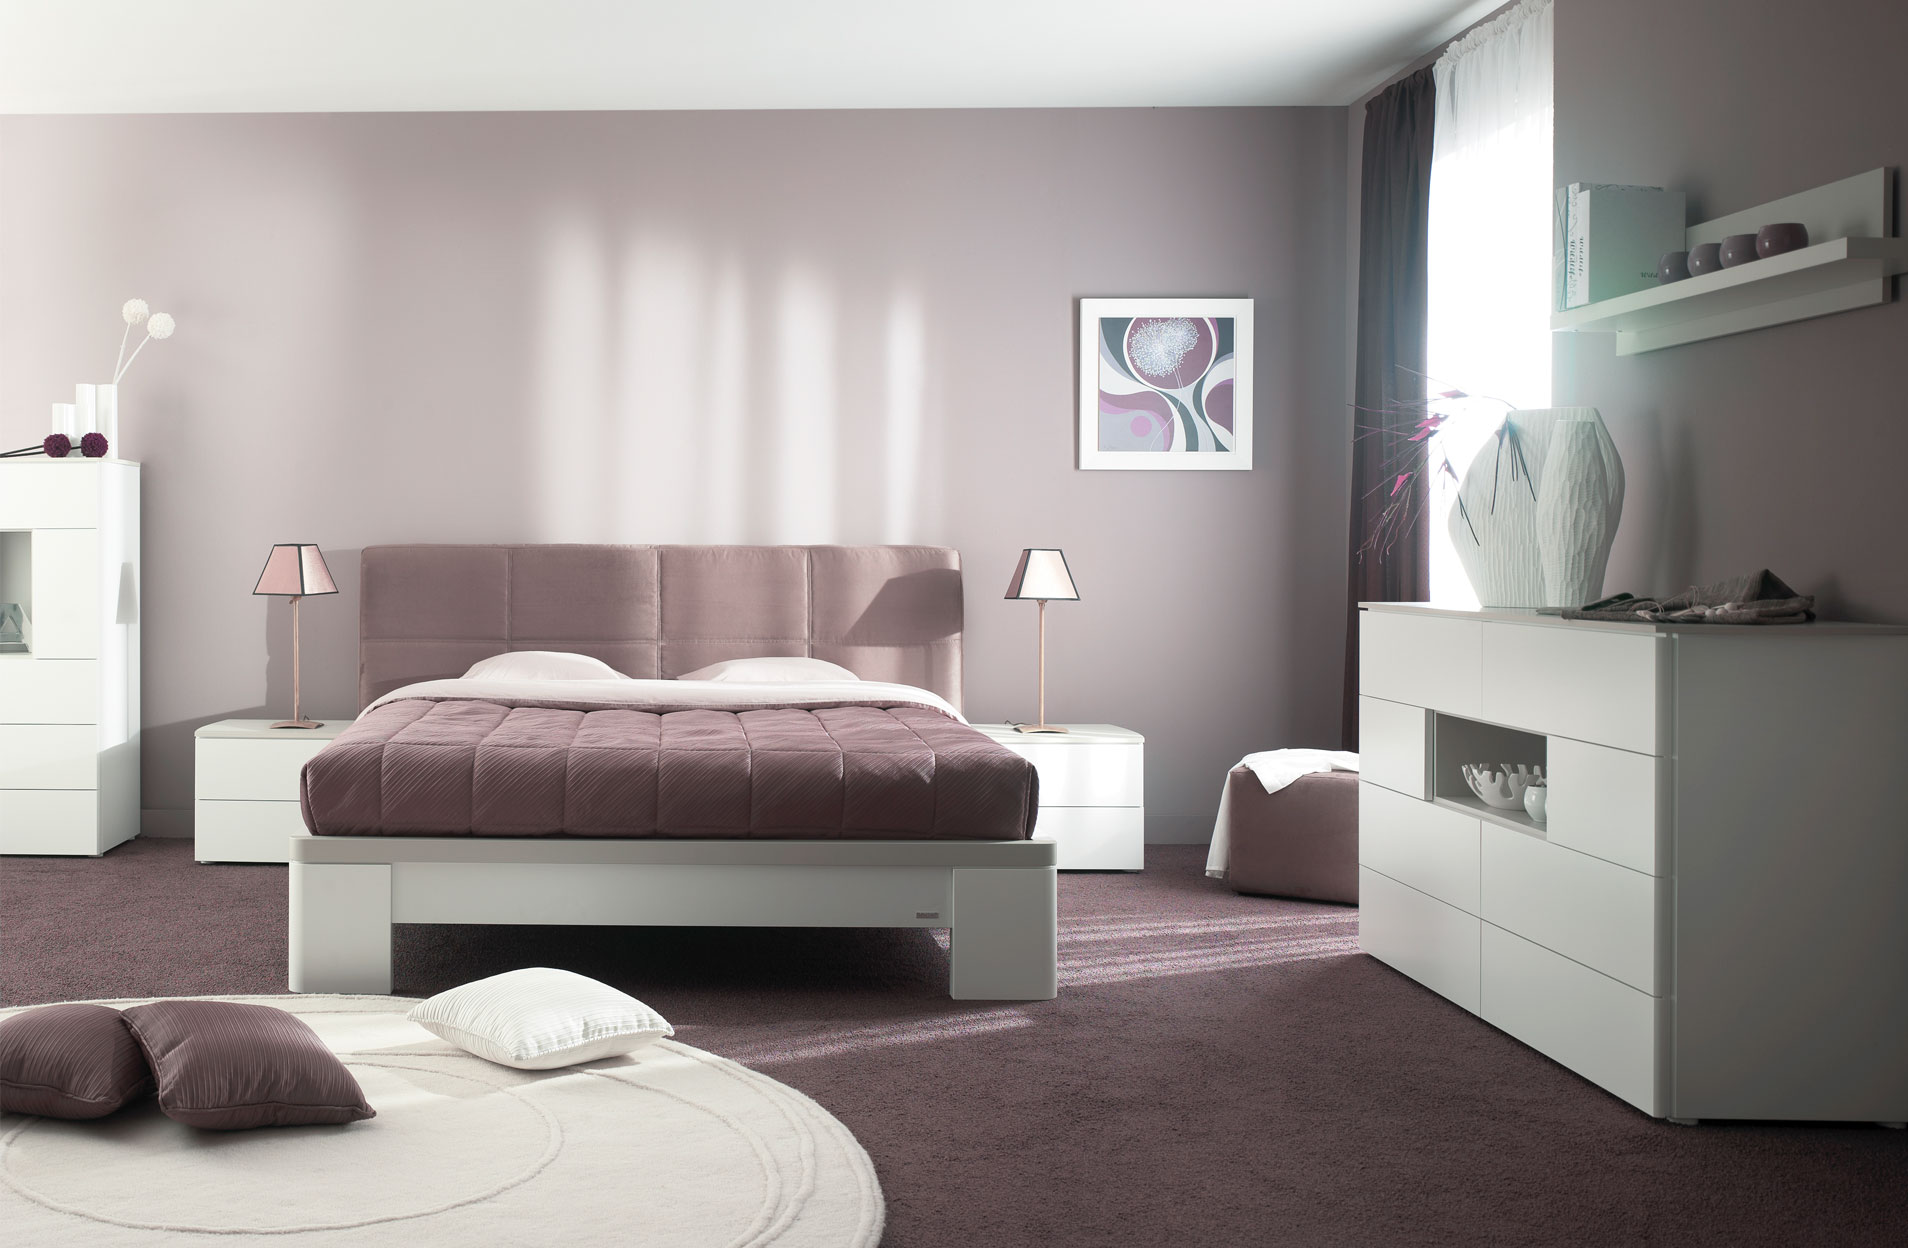 Inspiration deco chambre ado for Decoration chambre a coucher contemporaine